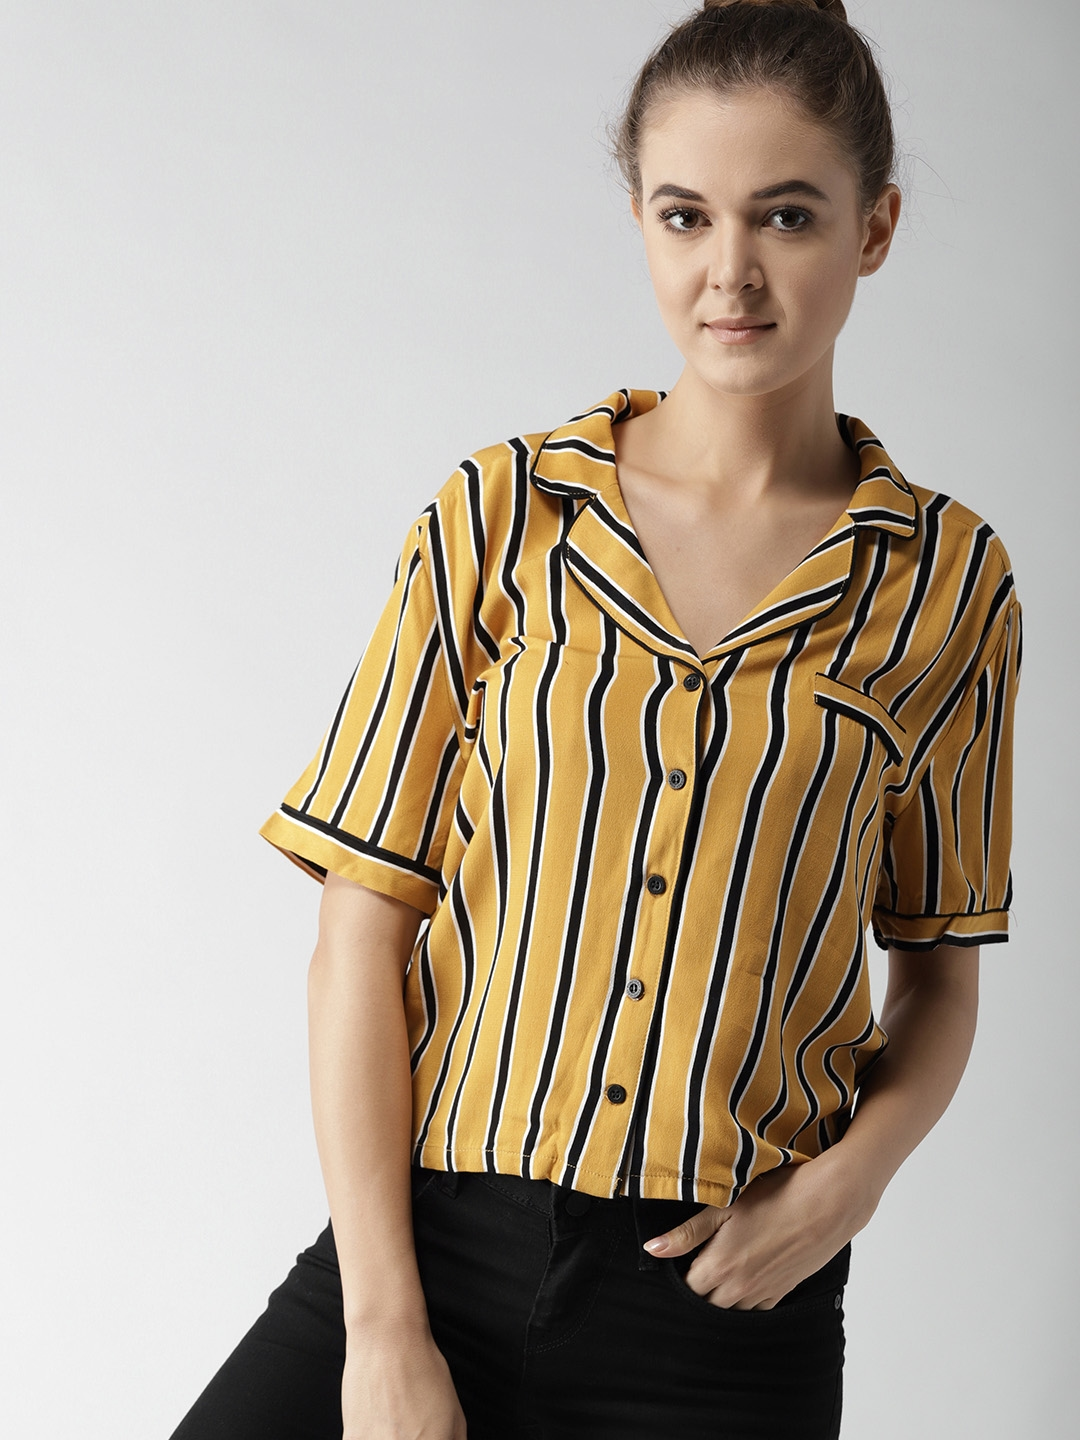 495cbbf4e46 FOREVER 21 Women Mustard Yellow   Black Regular Fit Striped Casual Shirt